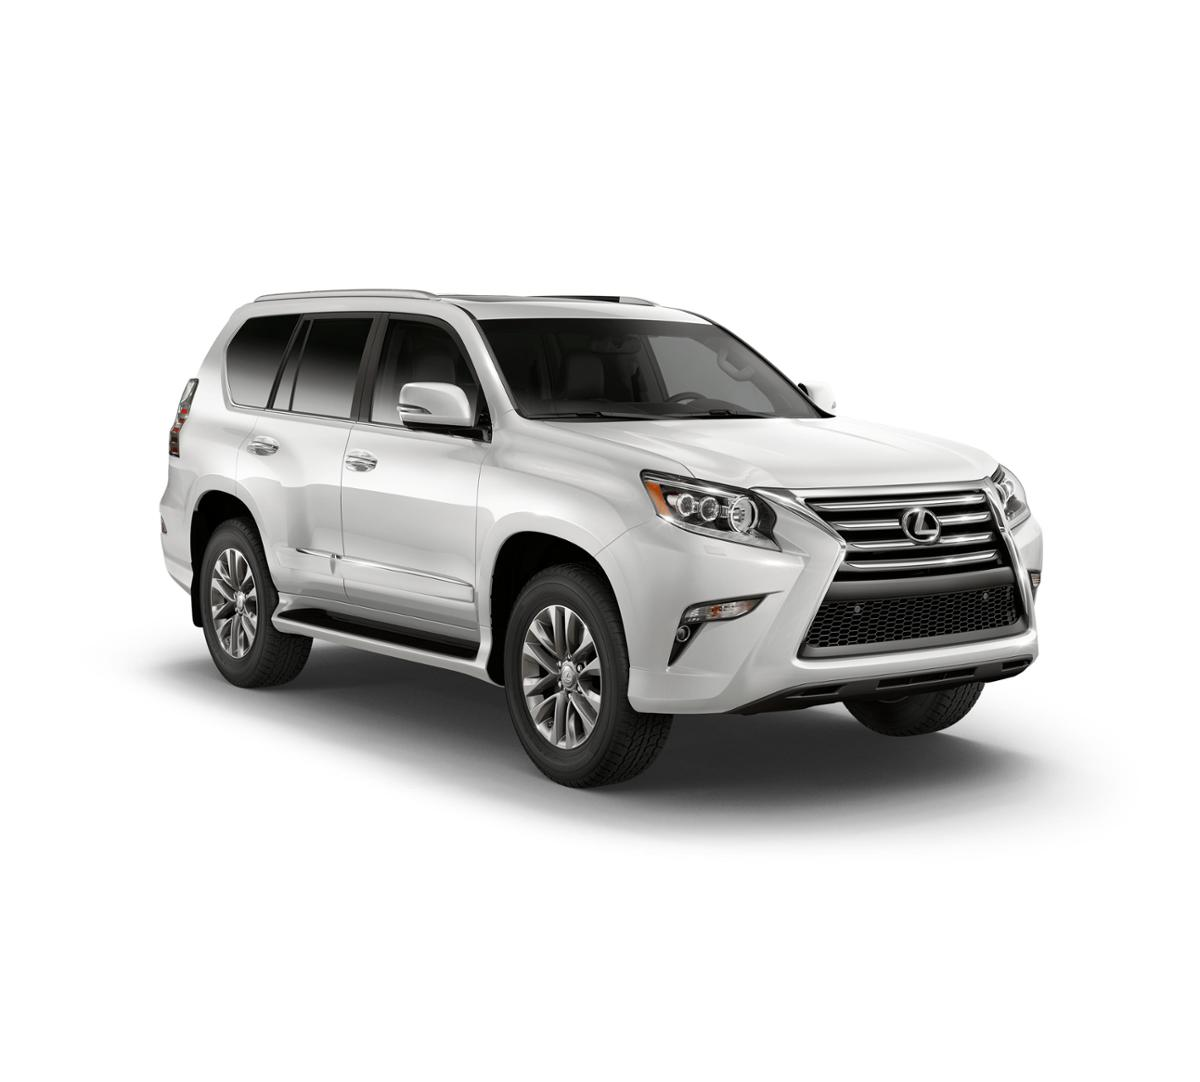 2018 Lexus GX 460 Vehicle Photo in Modesto, CA 95356